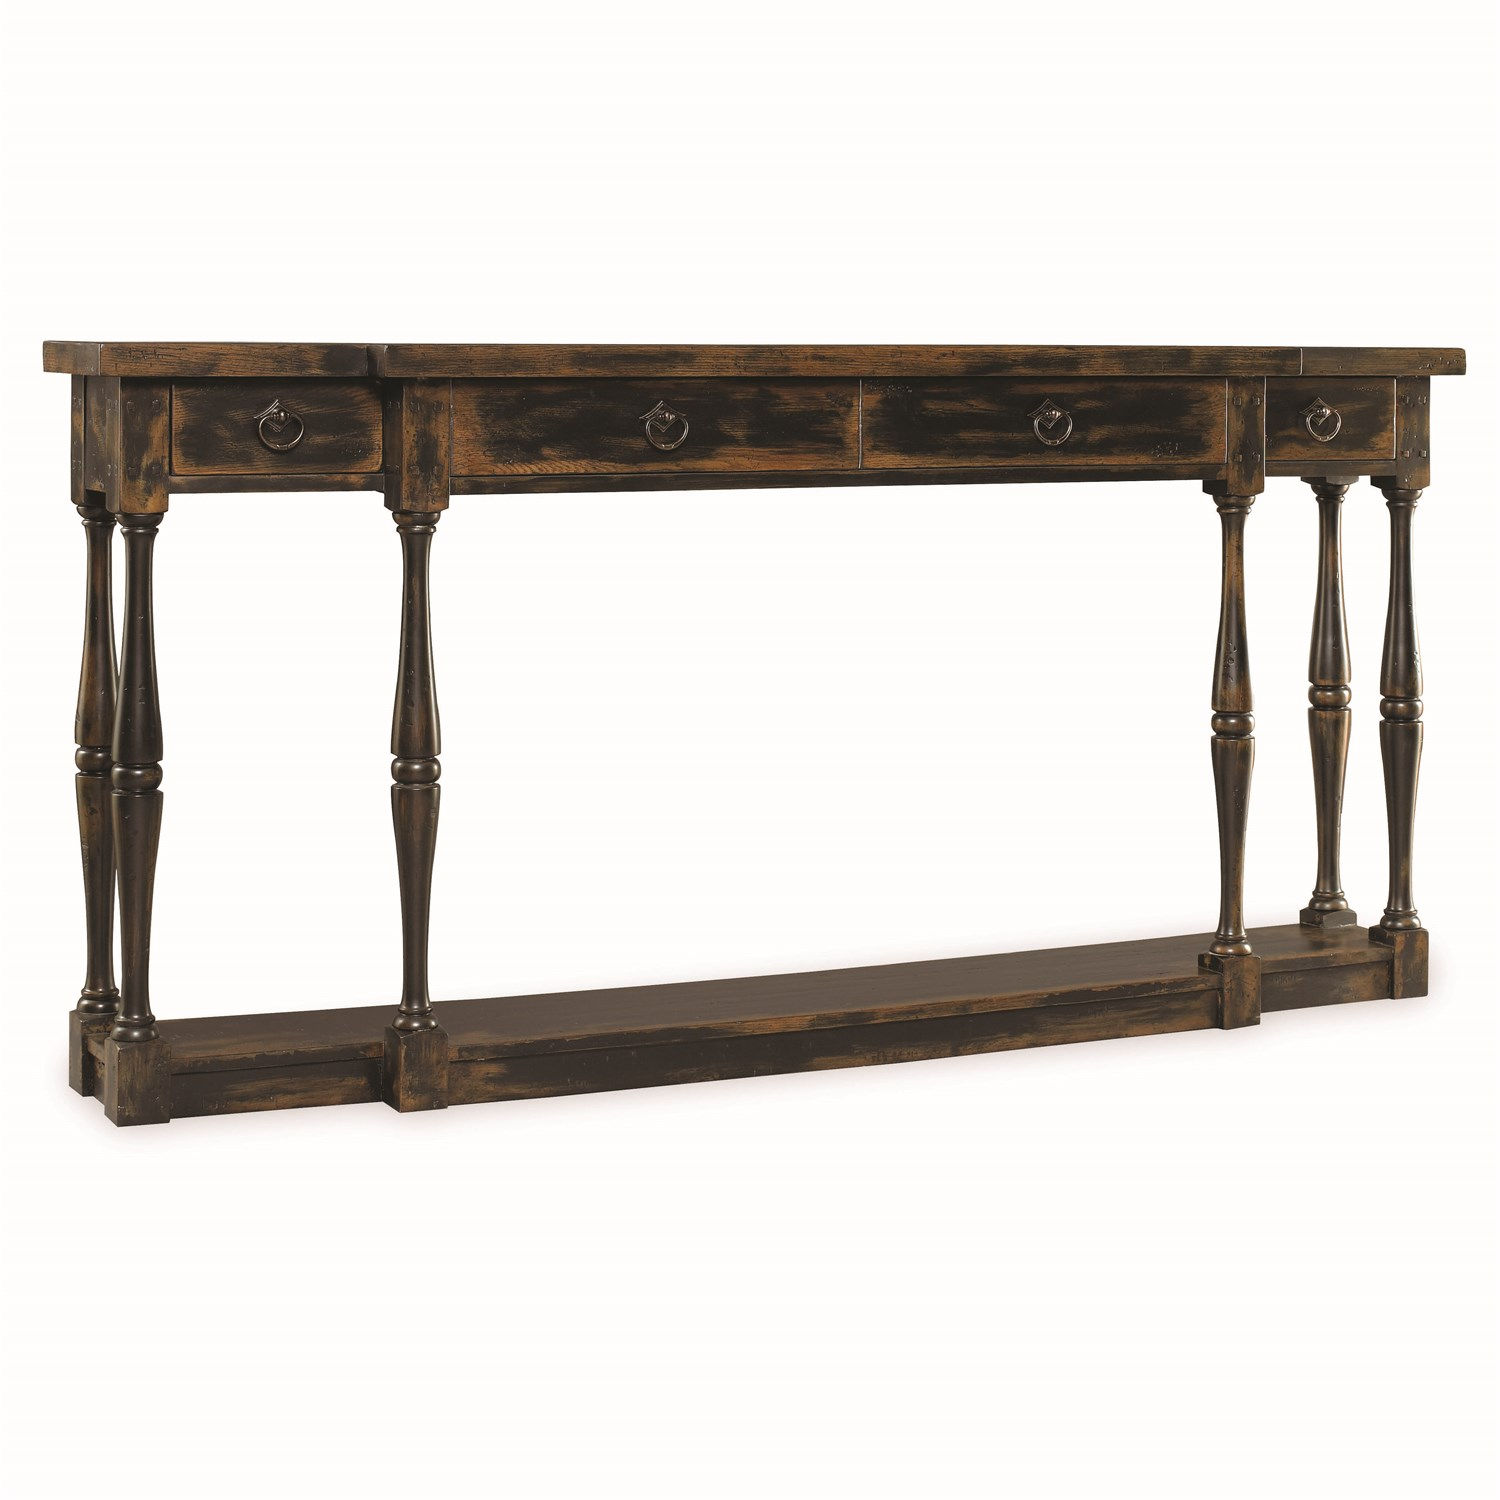 flooring interesting thin console table for home furniture ideas narrow hallway and living room tall accent design half round top hairpin legs your focus runner pattern rustic